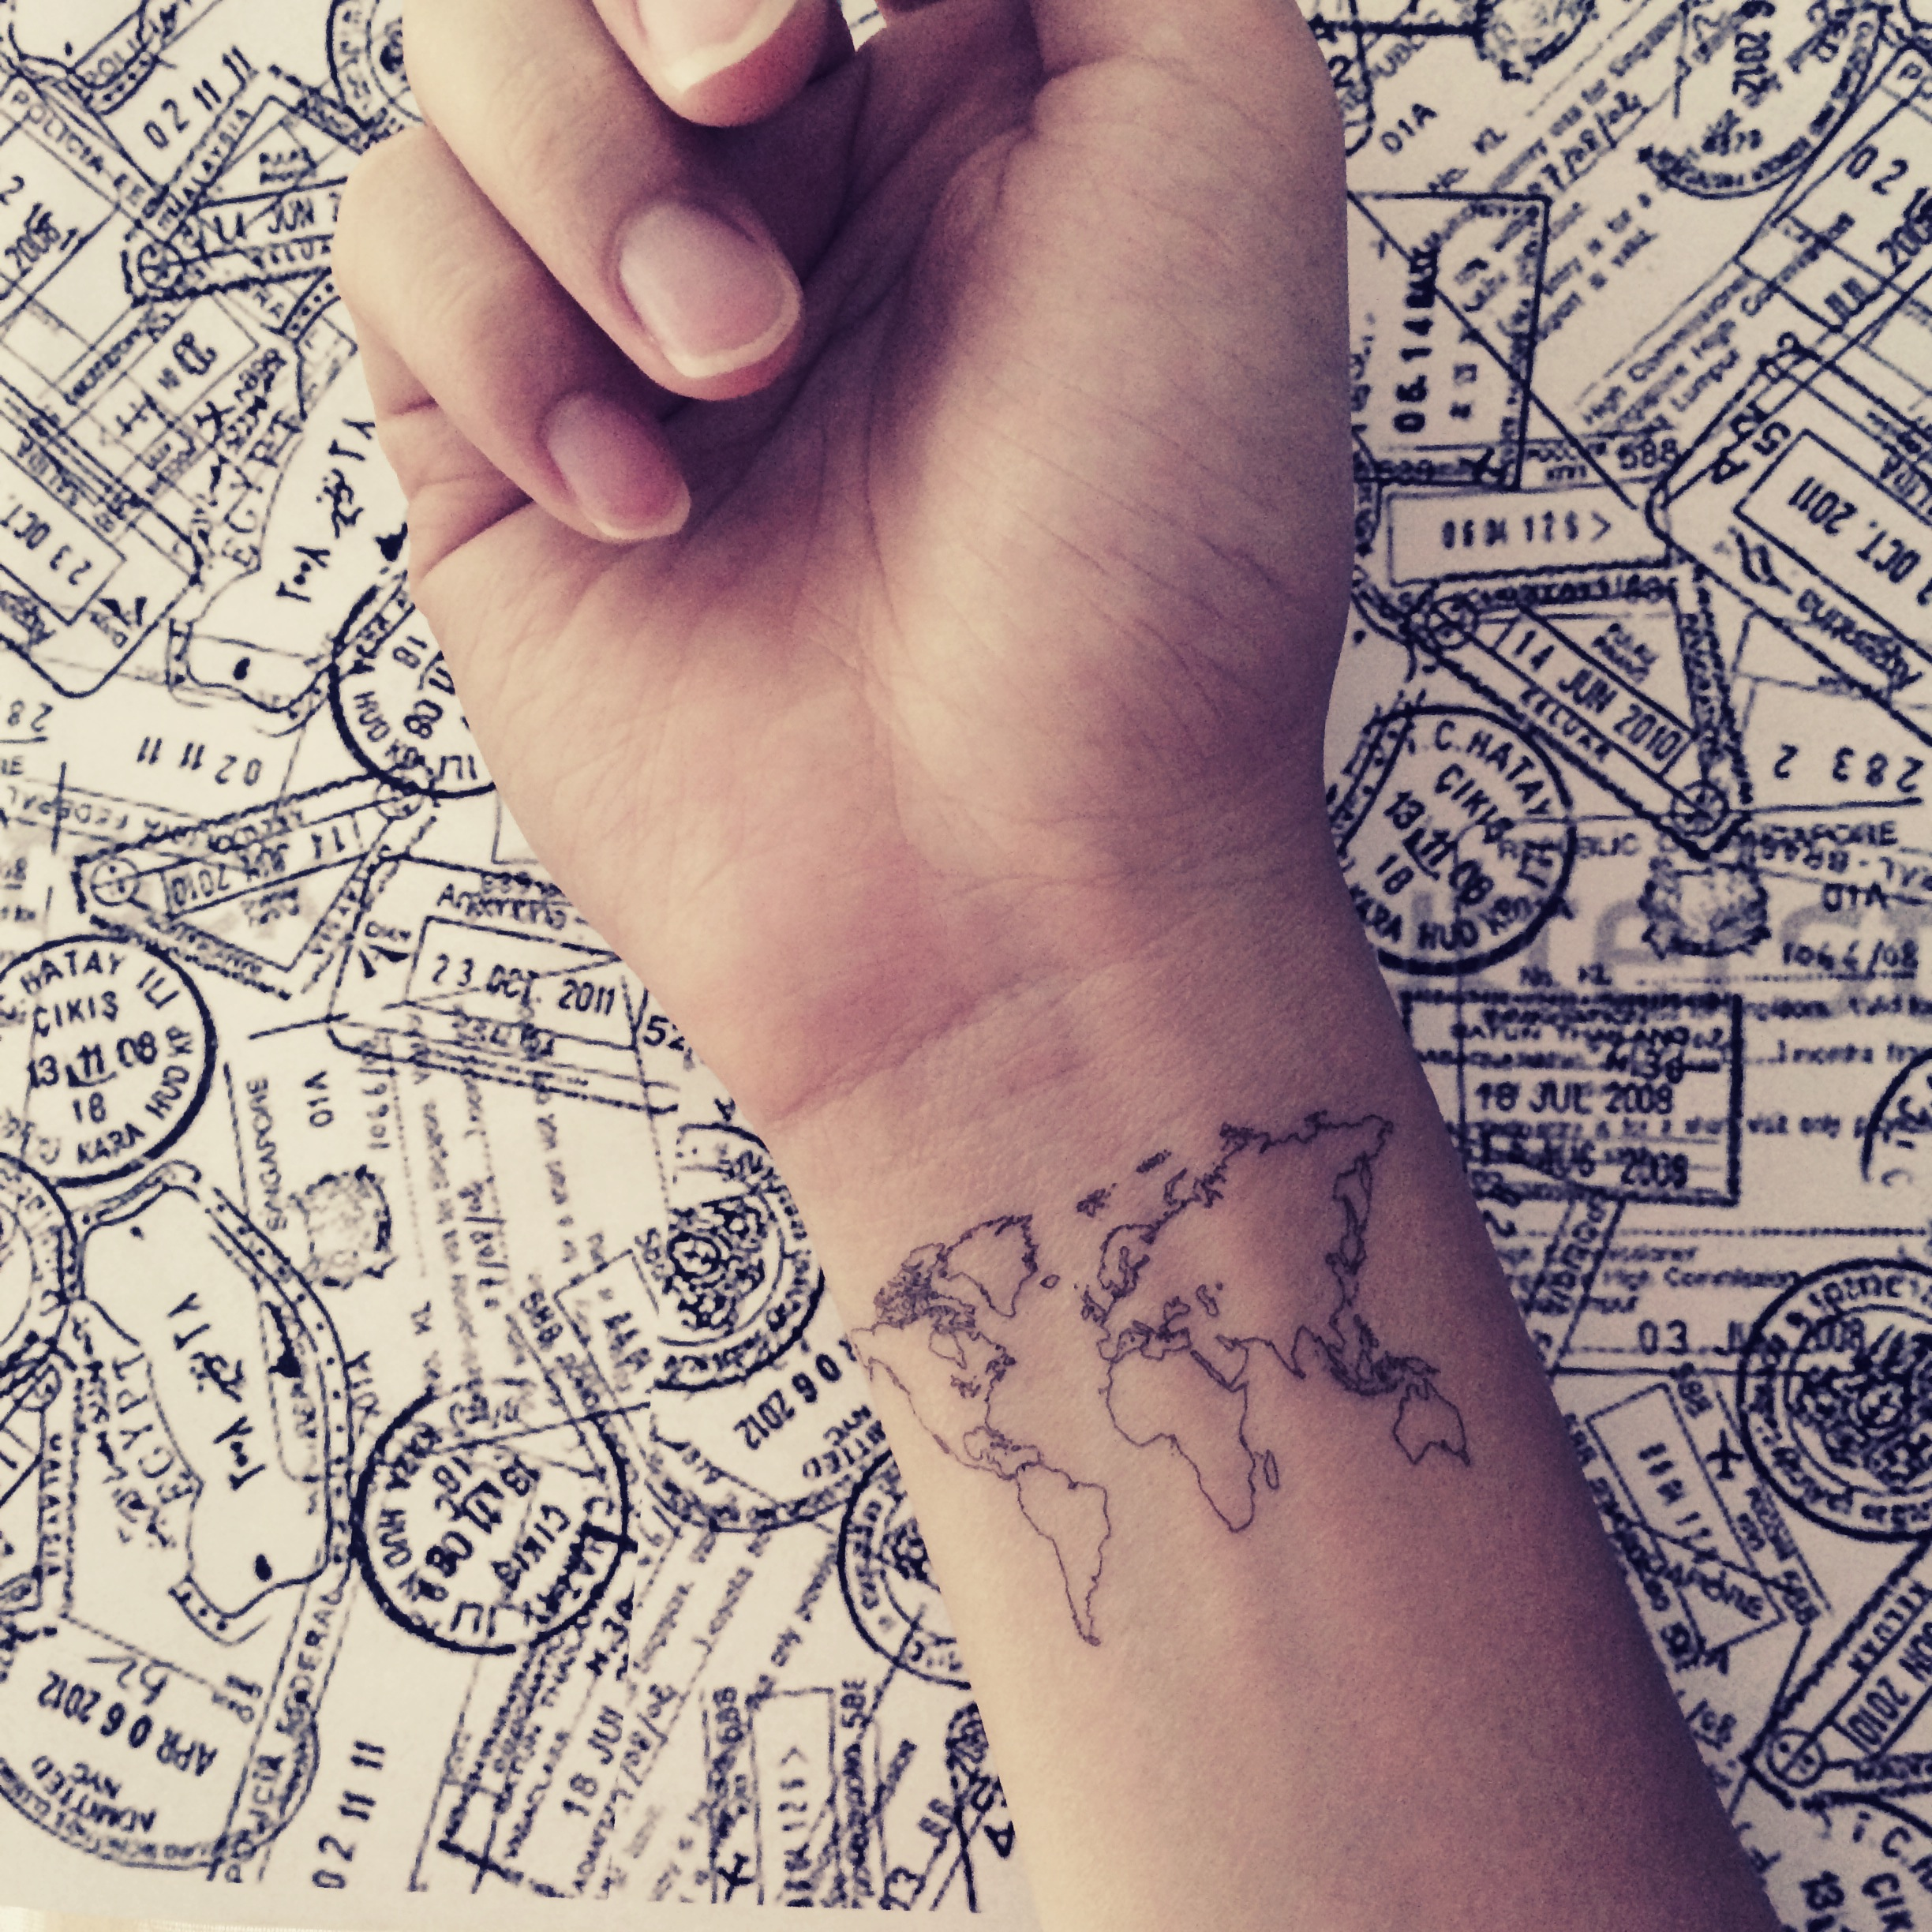 2pcs world map love travel wrist tattoo inknart temporary tattoo 2pcs world map love travel wrist tattoo inknart temporary tattoo wrist quote tattoo body gumiabroncs